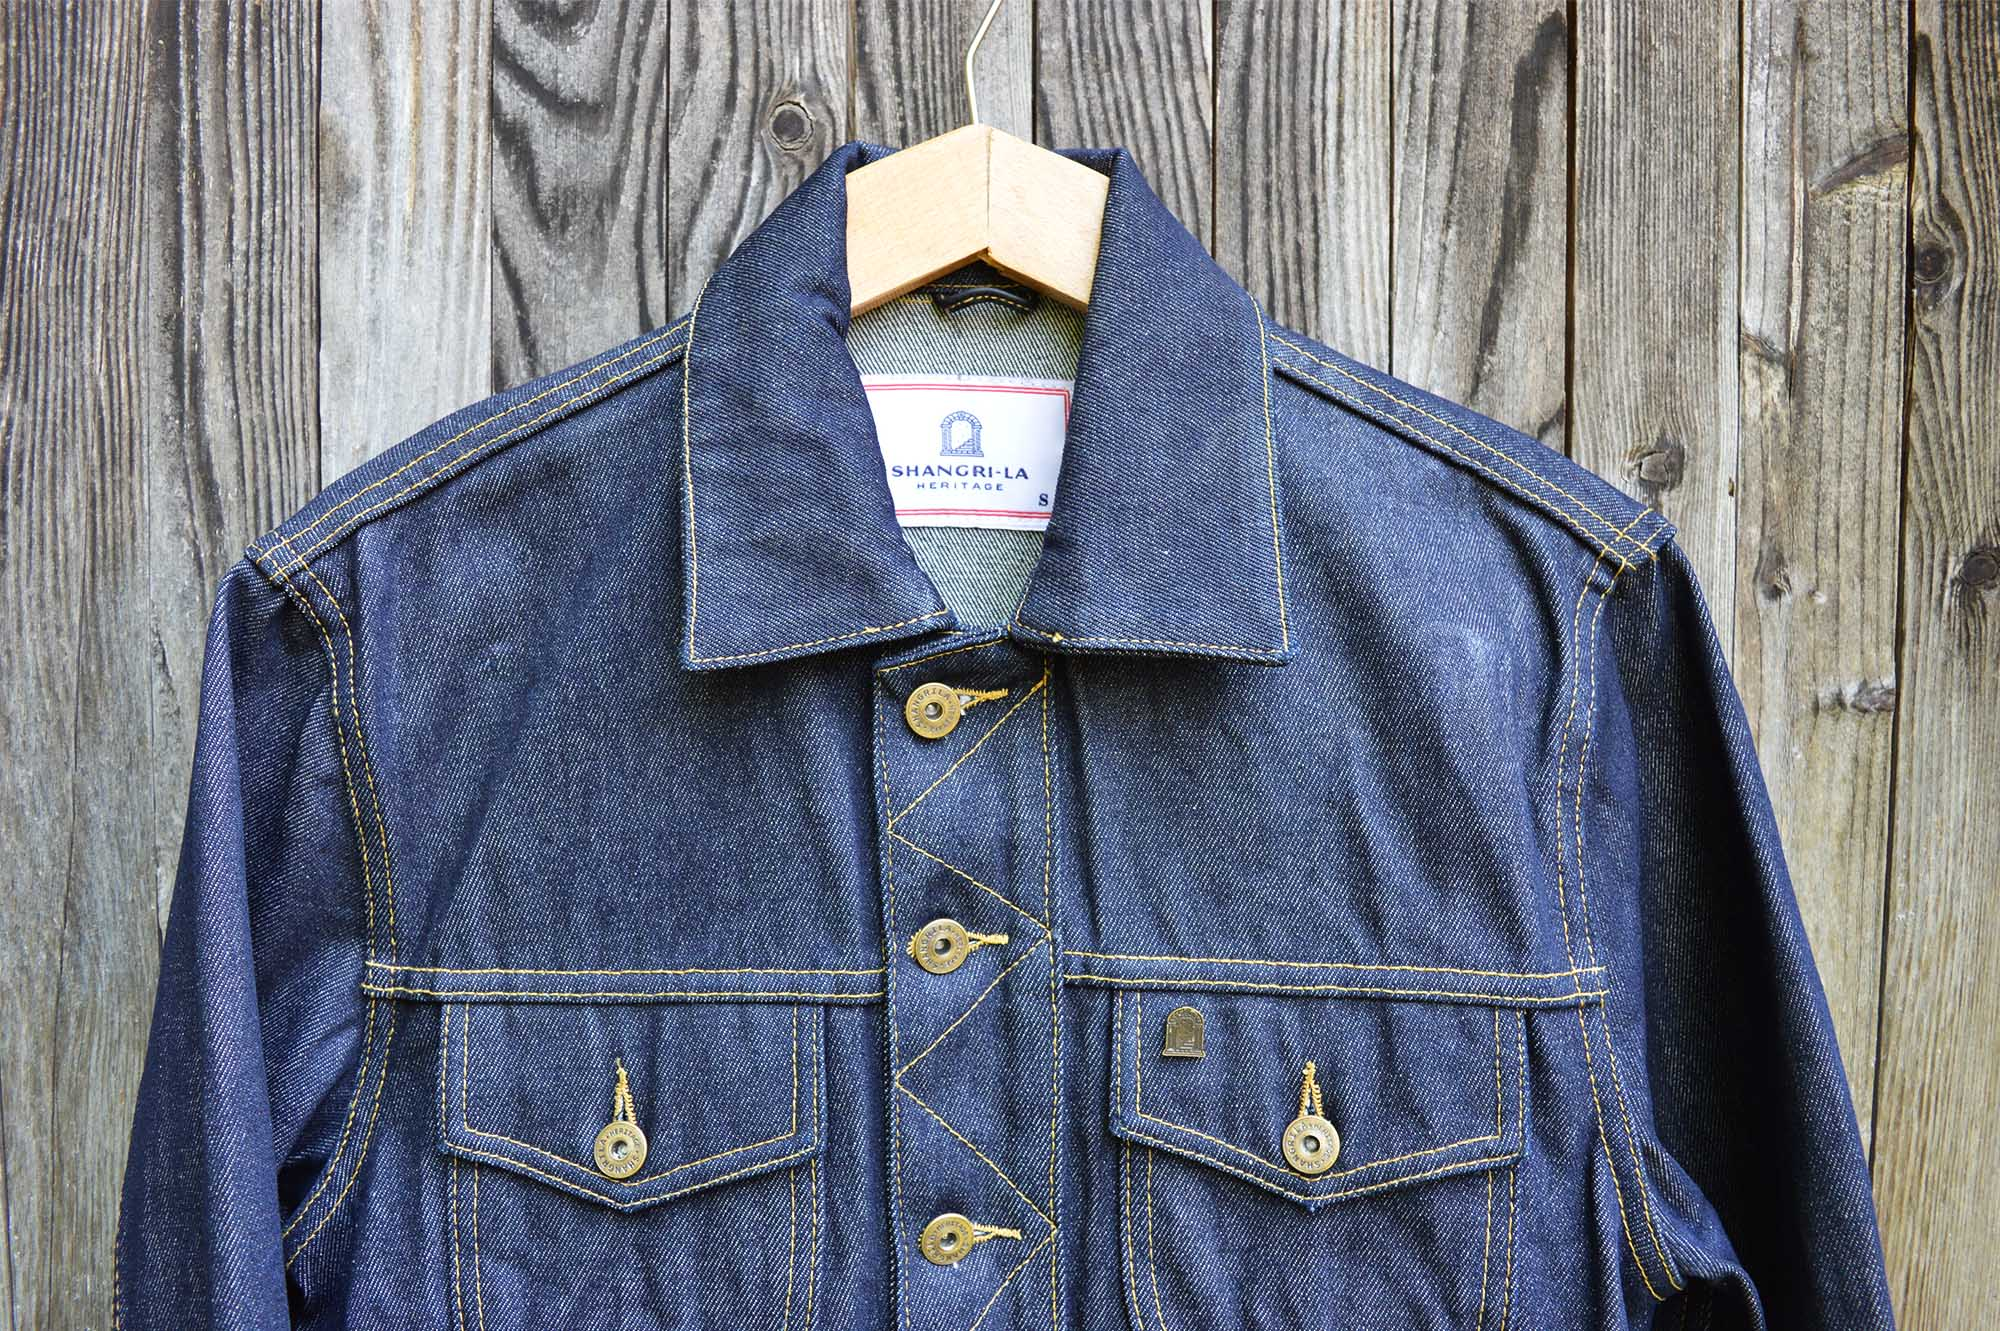 shangri-la-heritage-single-rider-denim-jacket-still-life-front-top